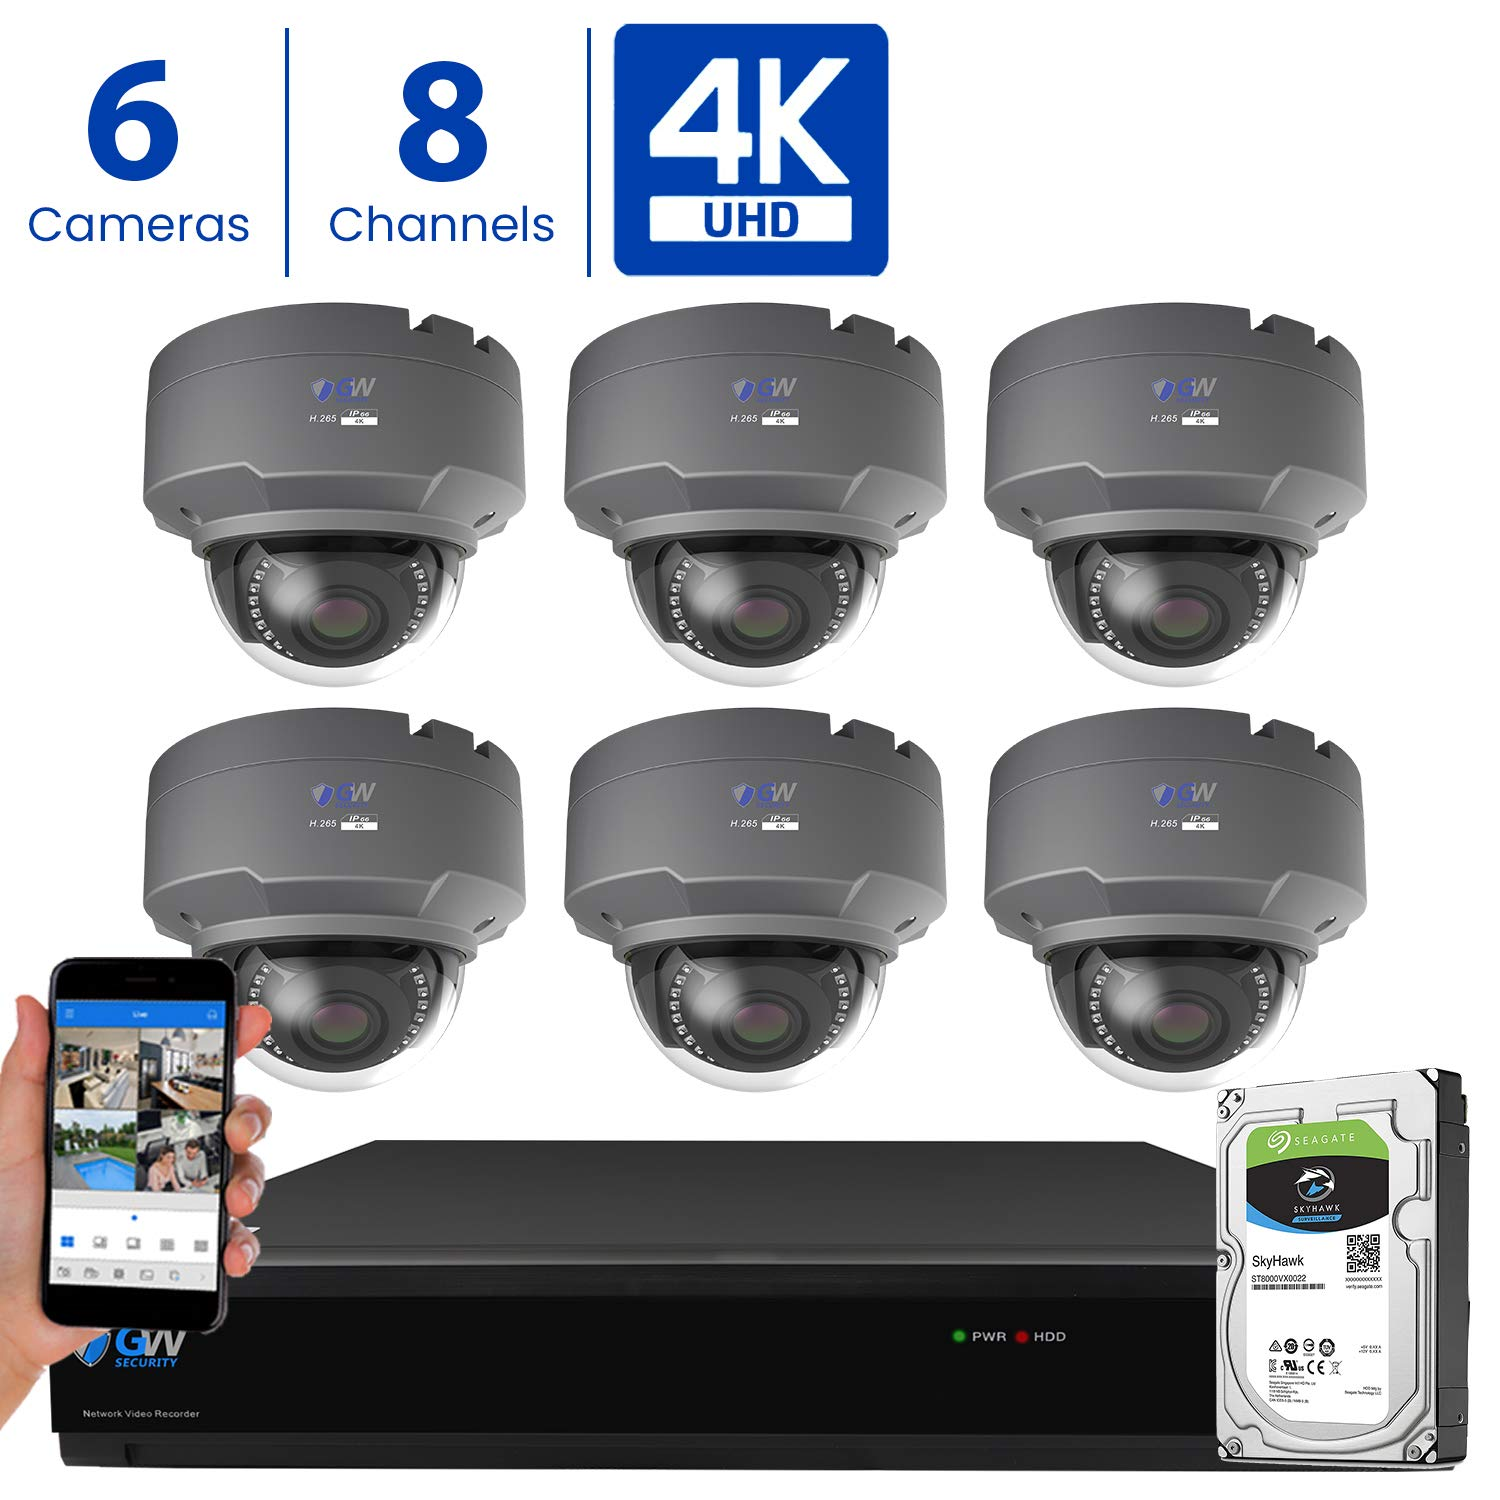 GW 8 Channel 4K H.265 CCTV DVR Security Camera System with 6 x UHD 8MP 2.8-12mm Varifocal Zoom 4K Dome Surveillance Cameras and 2TB HDD, Free Remote View, Motion Alert with Snapshot